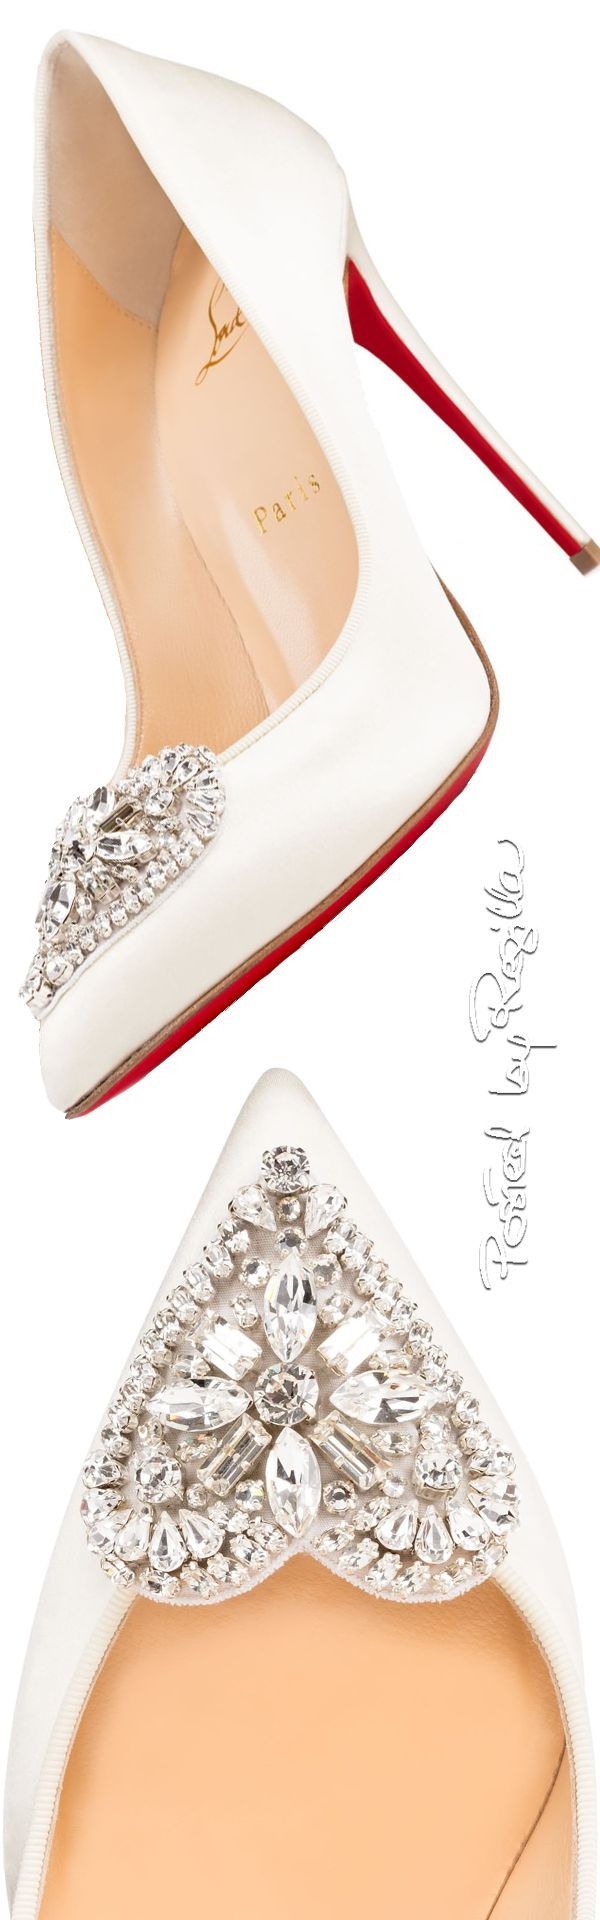 ✦ The Socialites Shoes a peak into Ms. Socialites shoe closet. Please dont drool ✦ Regilla ⚜ Christian Louboutin